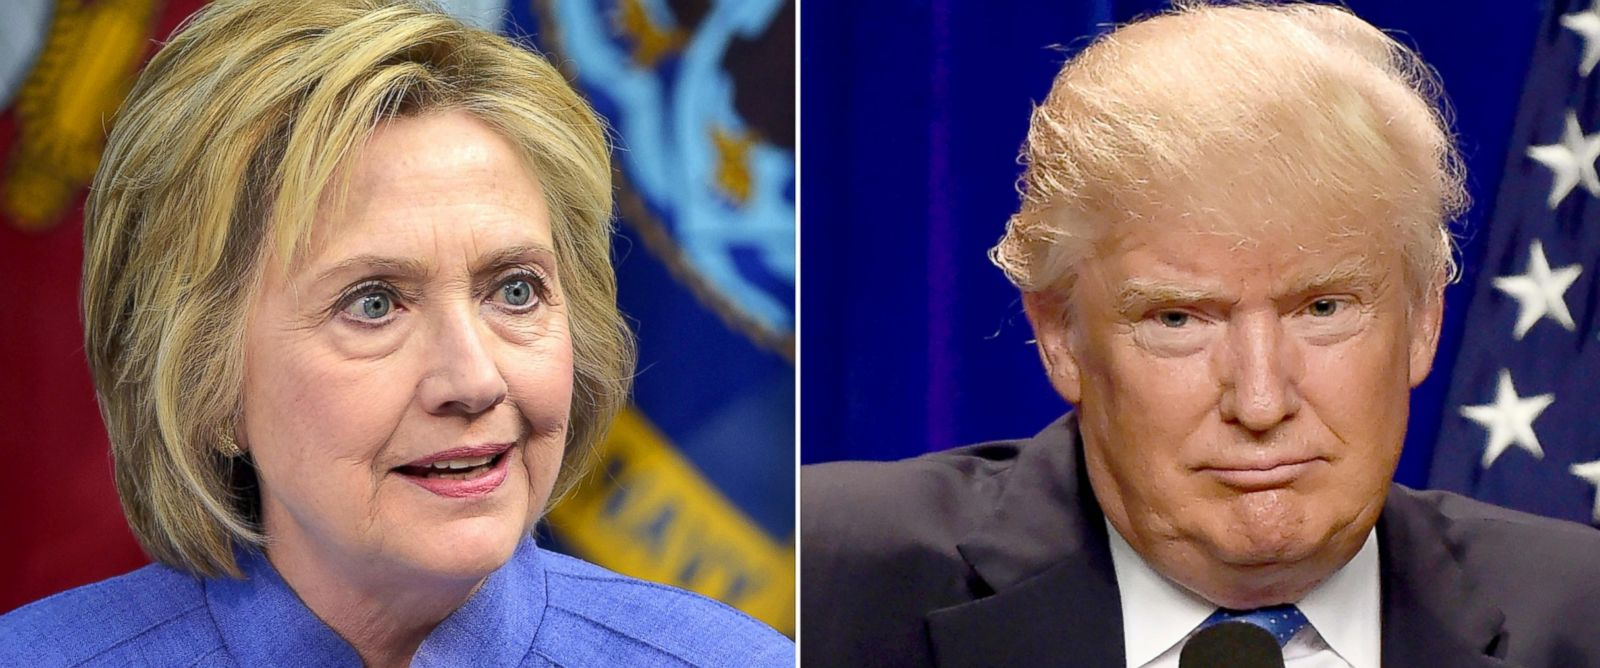 PHOTO: Democratic presidential candidate Hillary Clinton on June 15, 2016 and Republican presidential candidate Donald Trump on June 13, 2016.